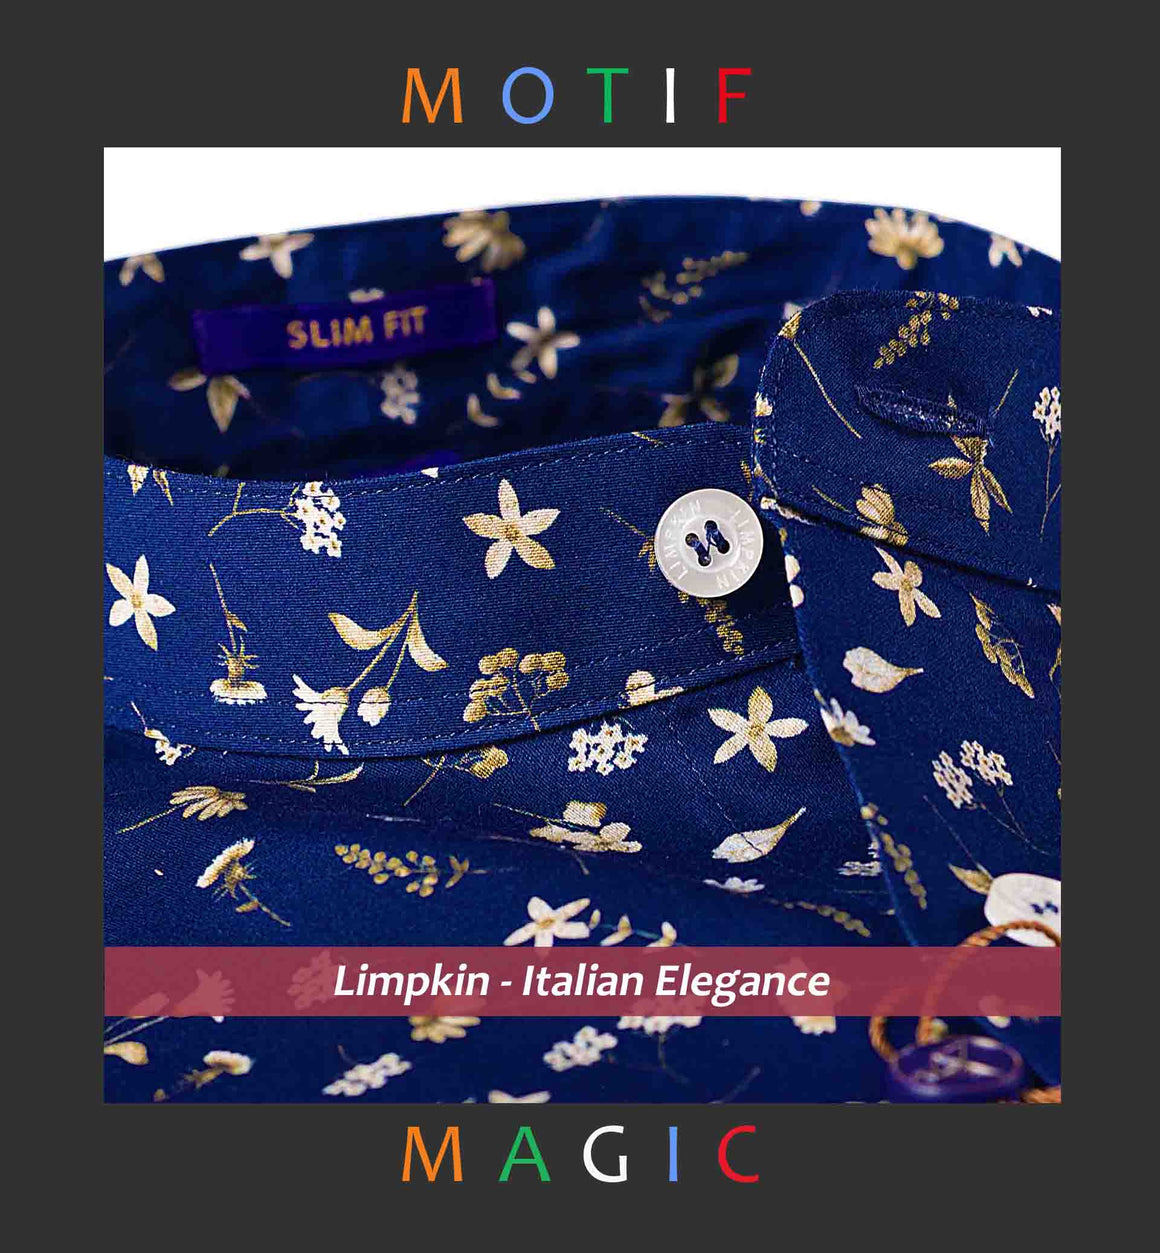 YANTAI- MAGICAL MOTIF PRINT IN MANDARIN